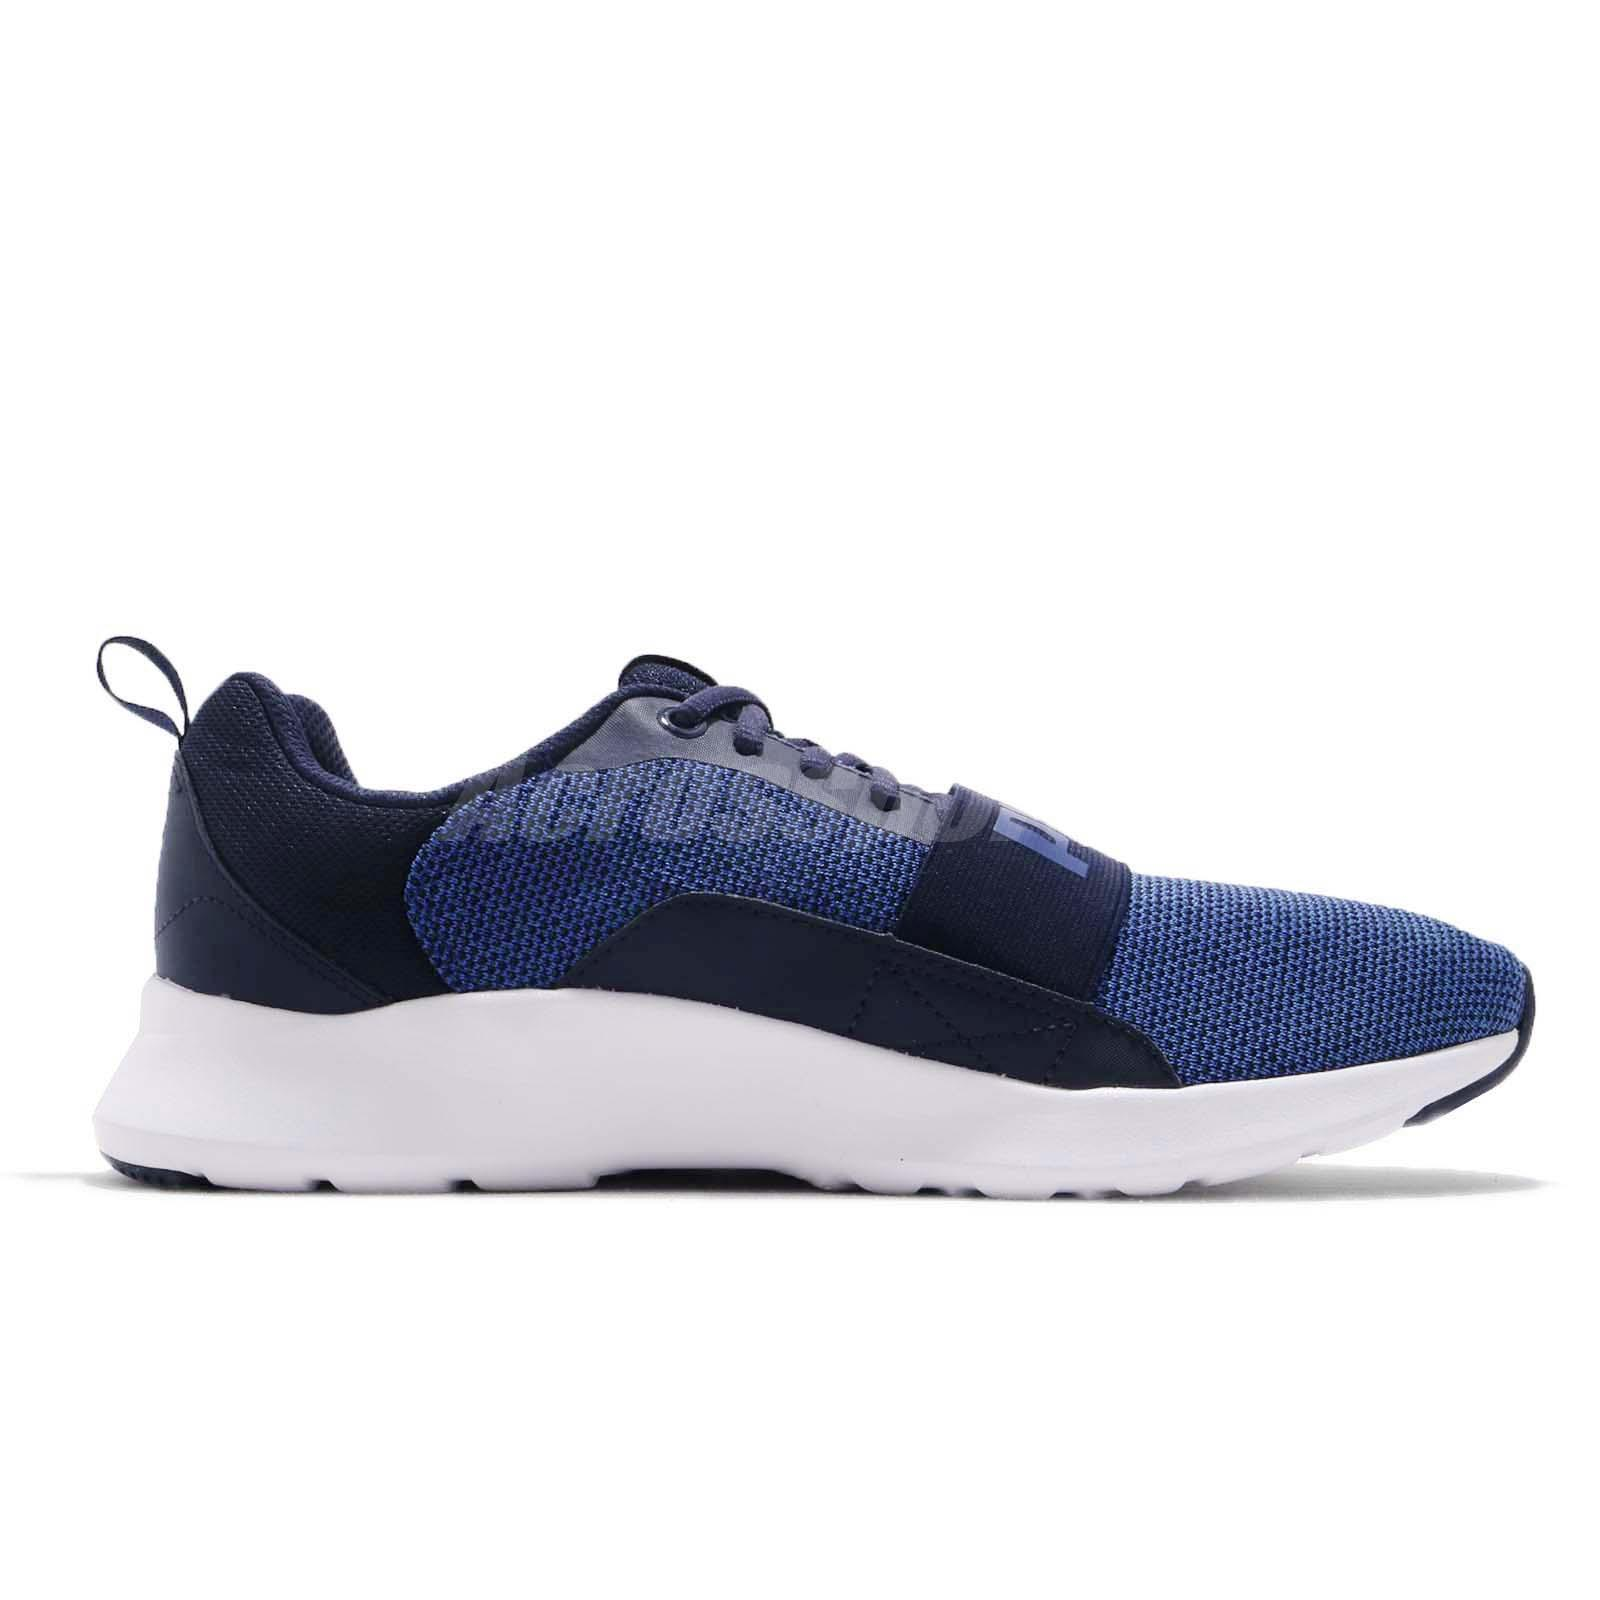 aaa6f14d0869 Puma Wired Knit Peacoat Sodalite Blue White Men Running Shoes ...